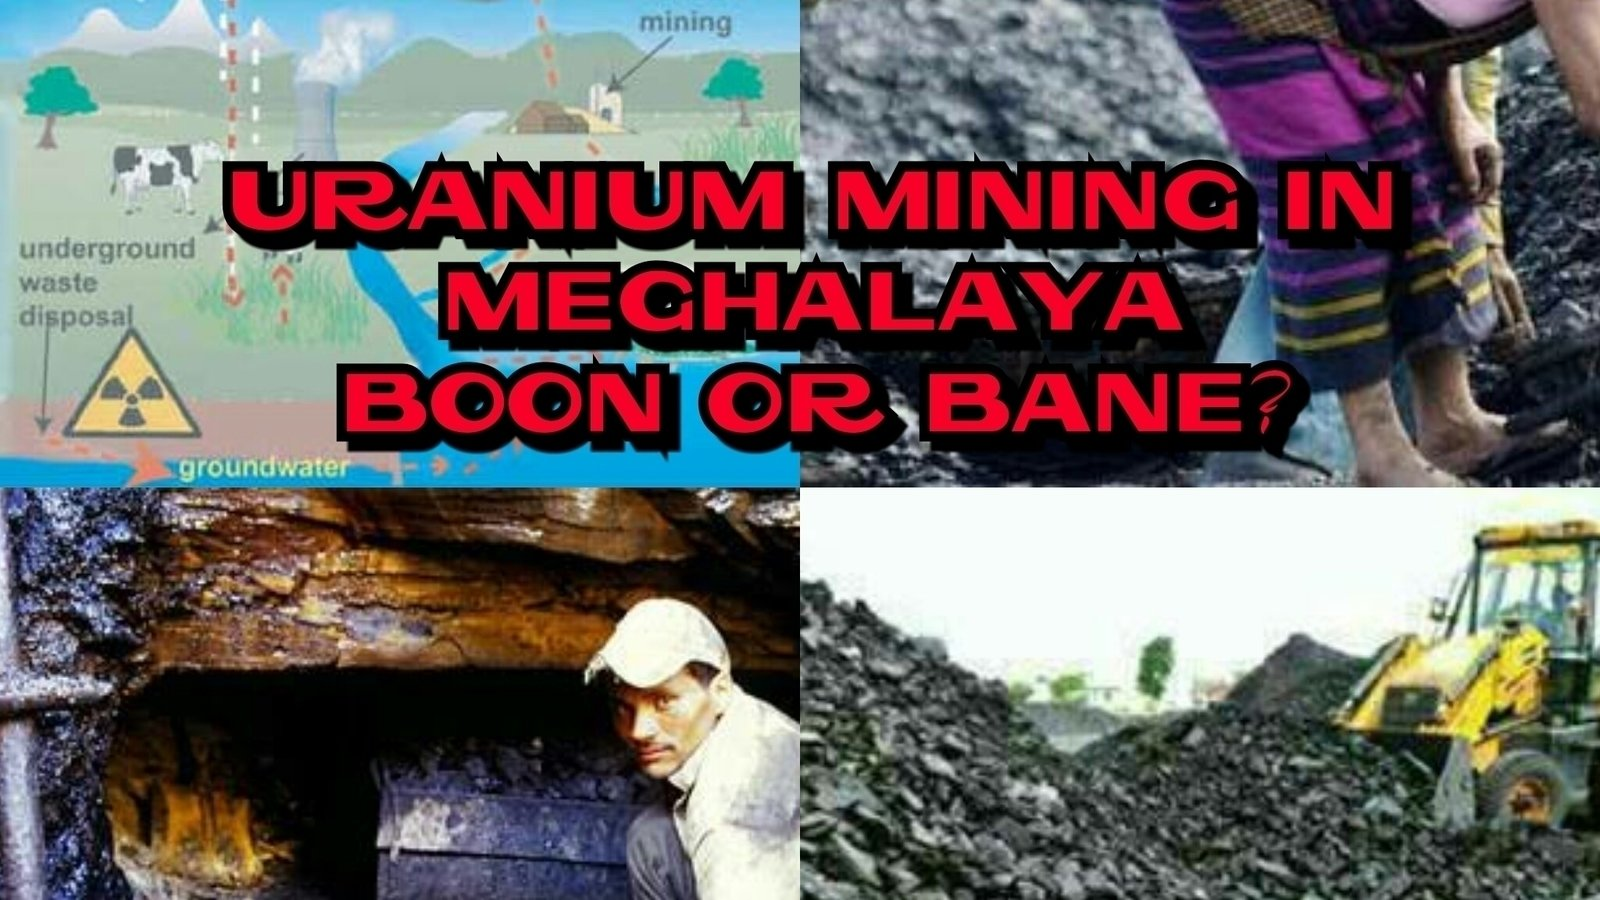 mining boon or curse A boon is a benefit or bonanza in this context, a curse is the opposite.